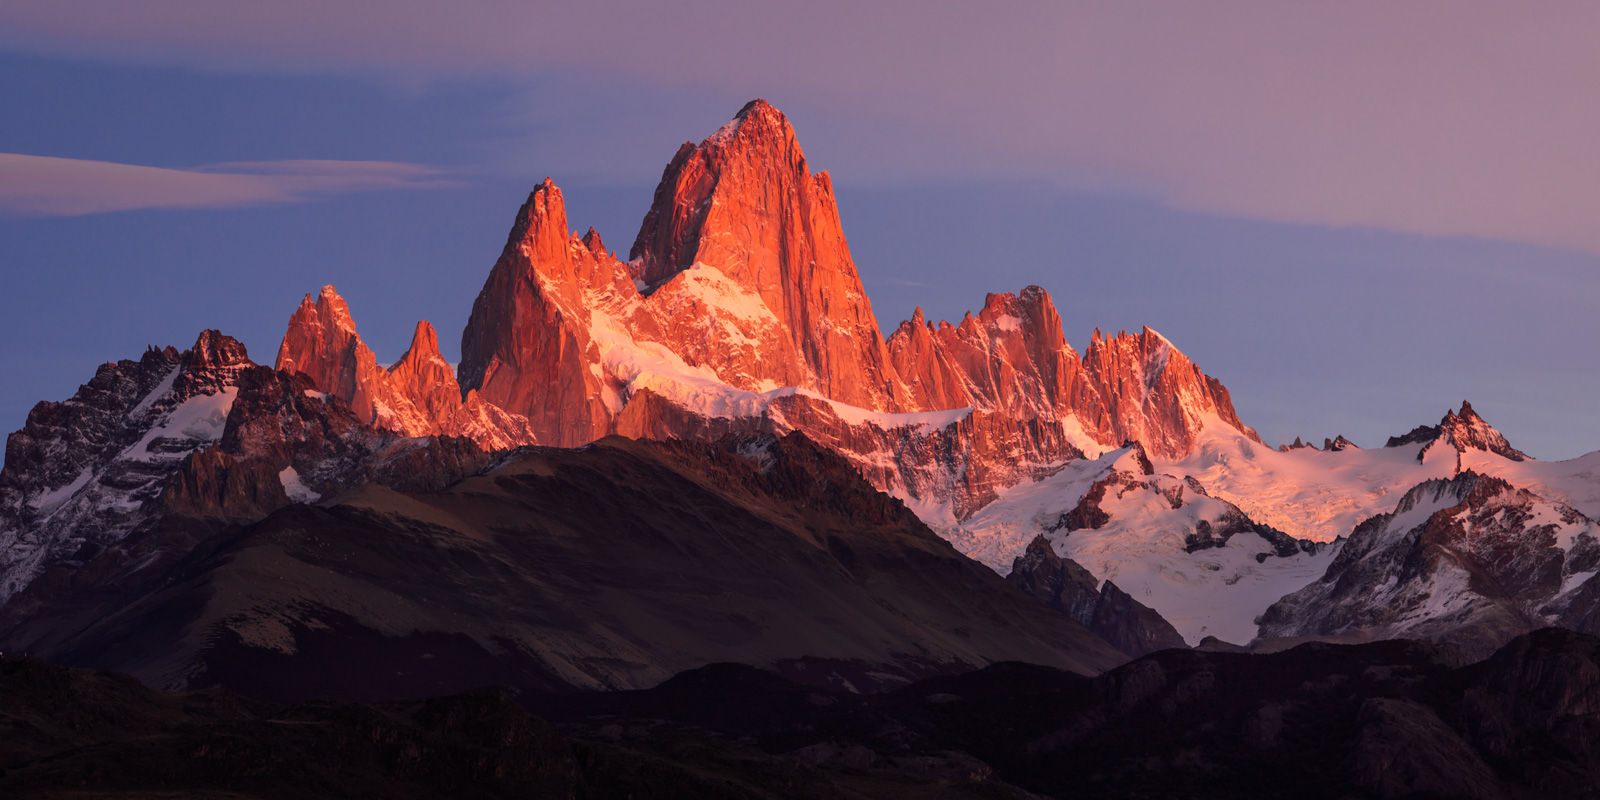 Argentina, Patagonia, Fitz-Roy, Sunrise, limited edition, photograph, fine art, landscape, photo